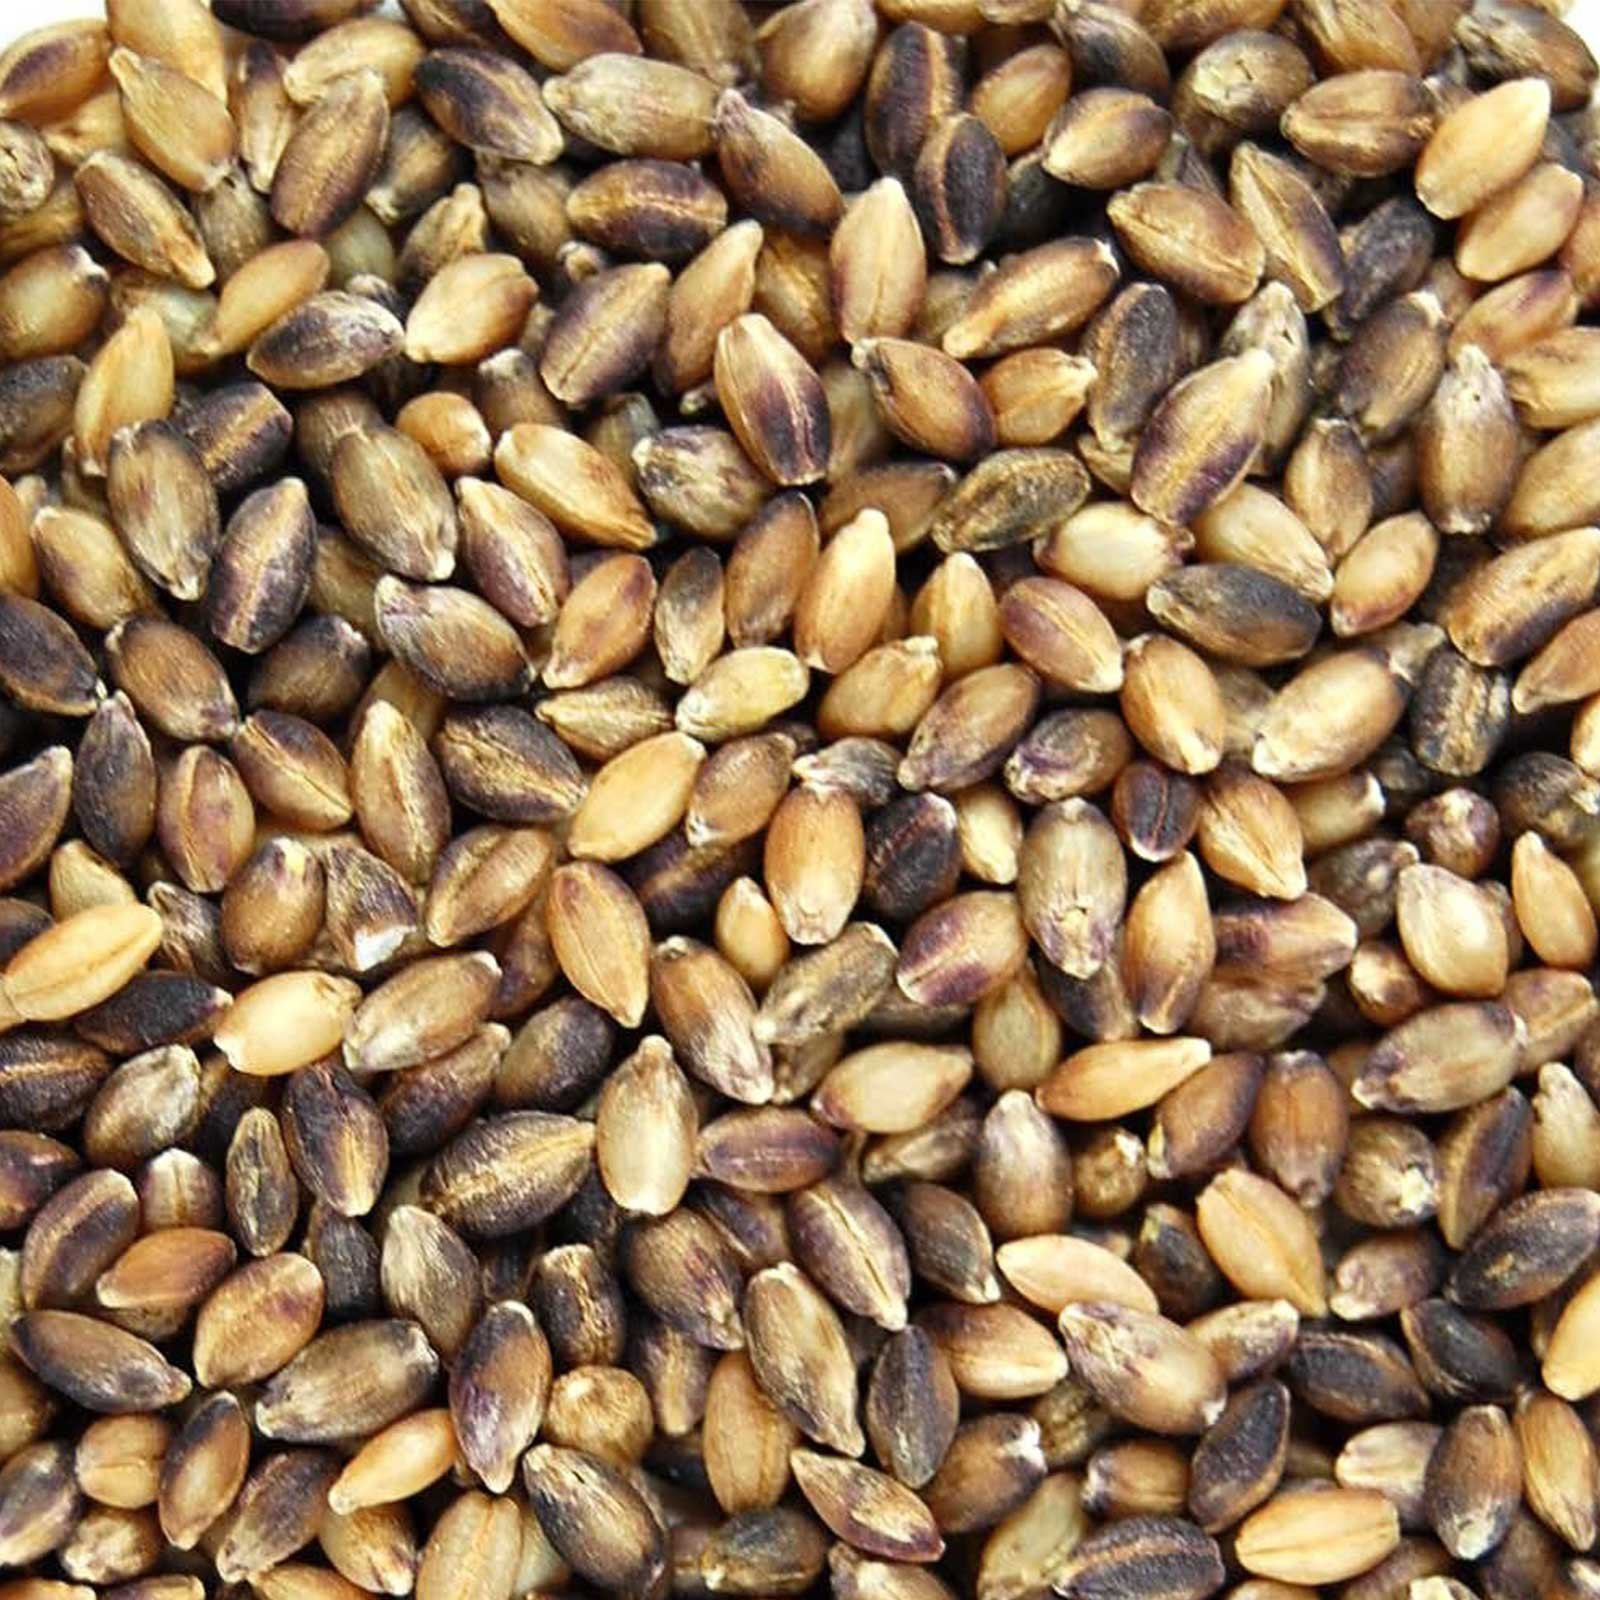 Purple Barley Seeds - Certified Organic - 2.5 Lb Pouch - Handy Pantry Brand - Also Called Black Barley - No Hull - For Barleygrass, Grind for Flour, Food Storage, Soups & More by Handy Pantry (Image #2)